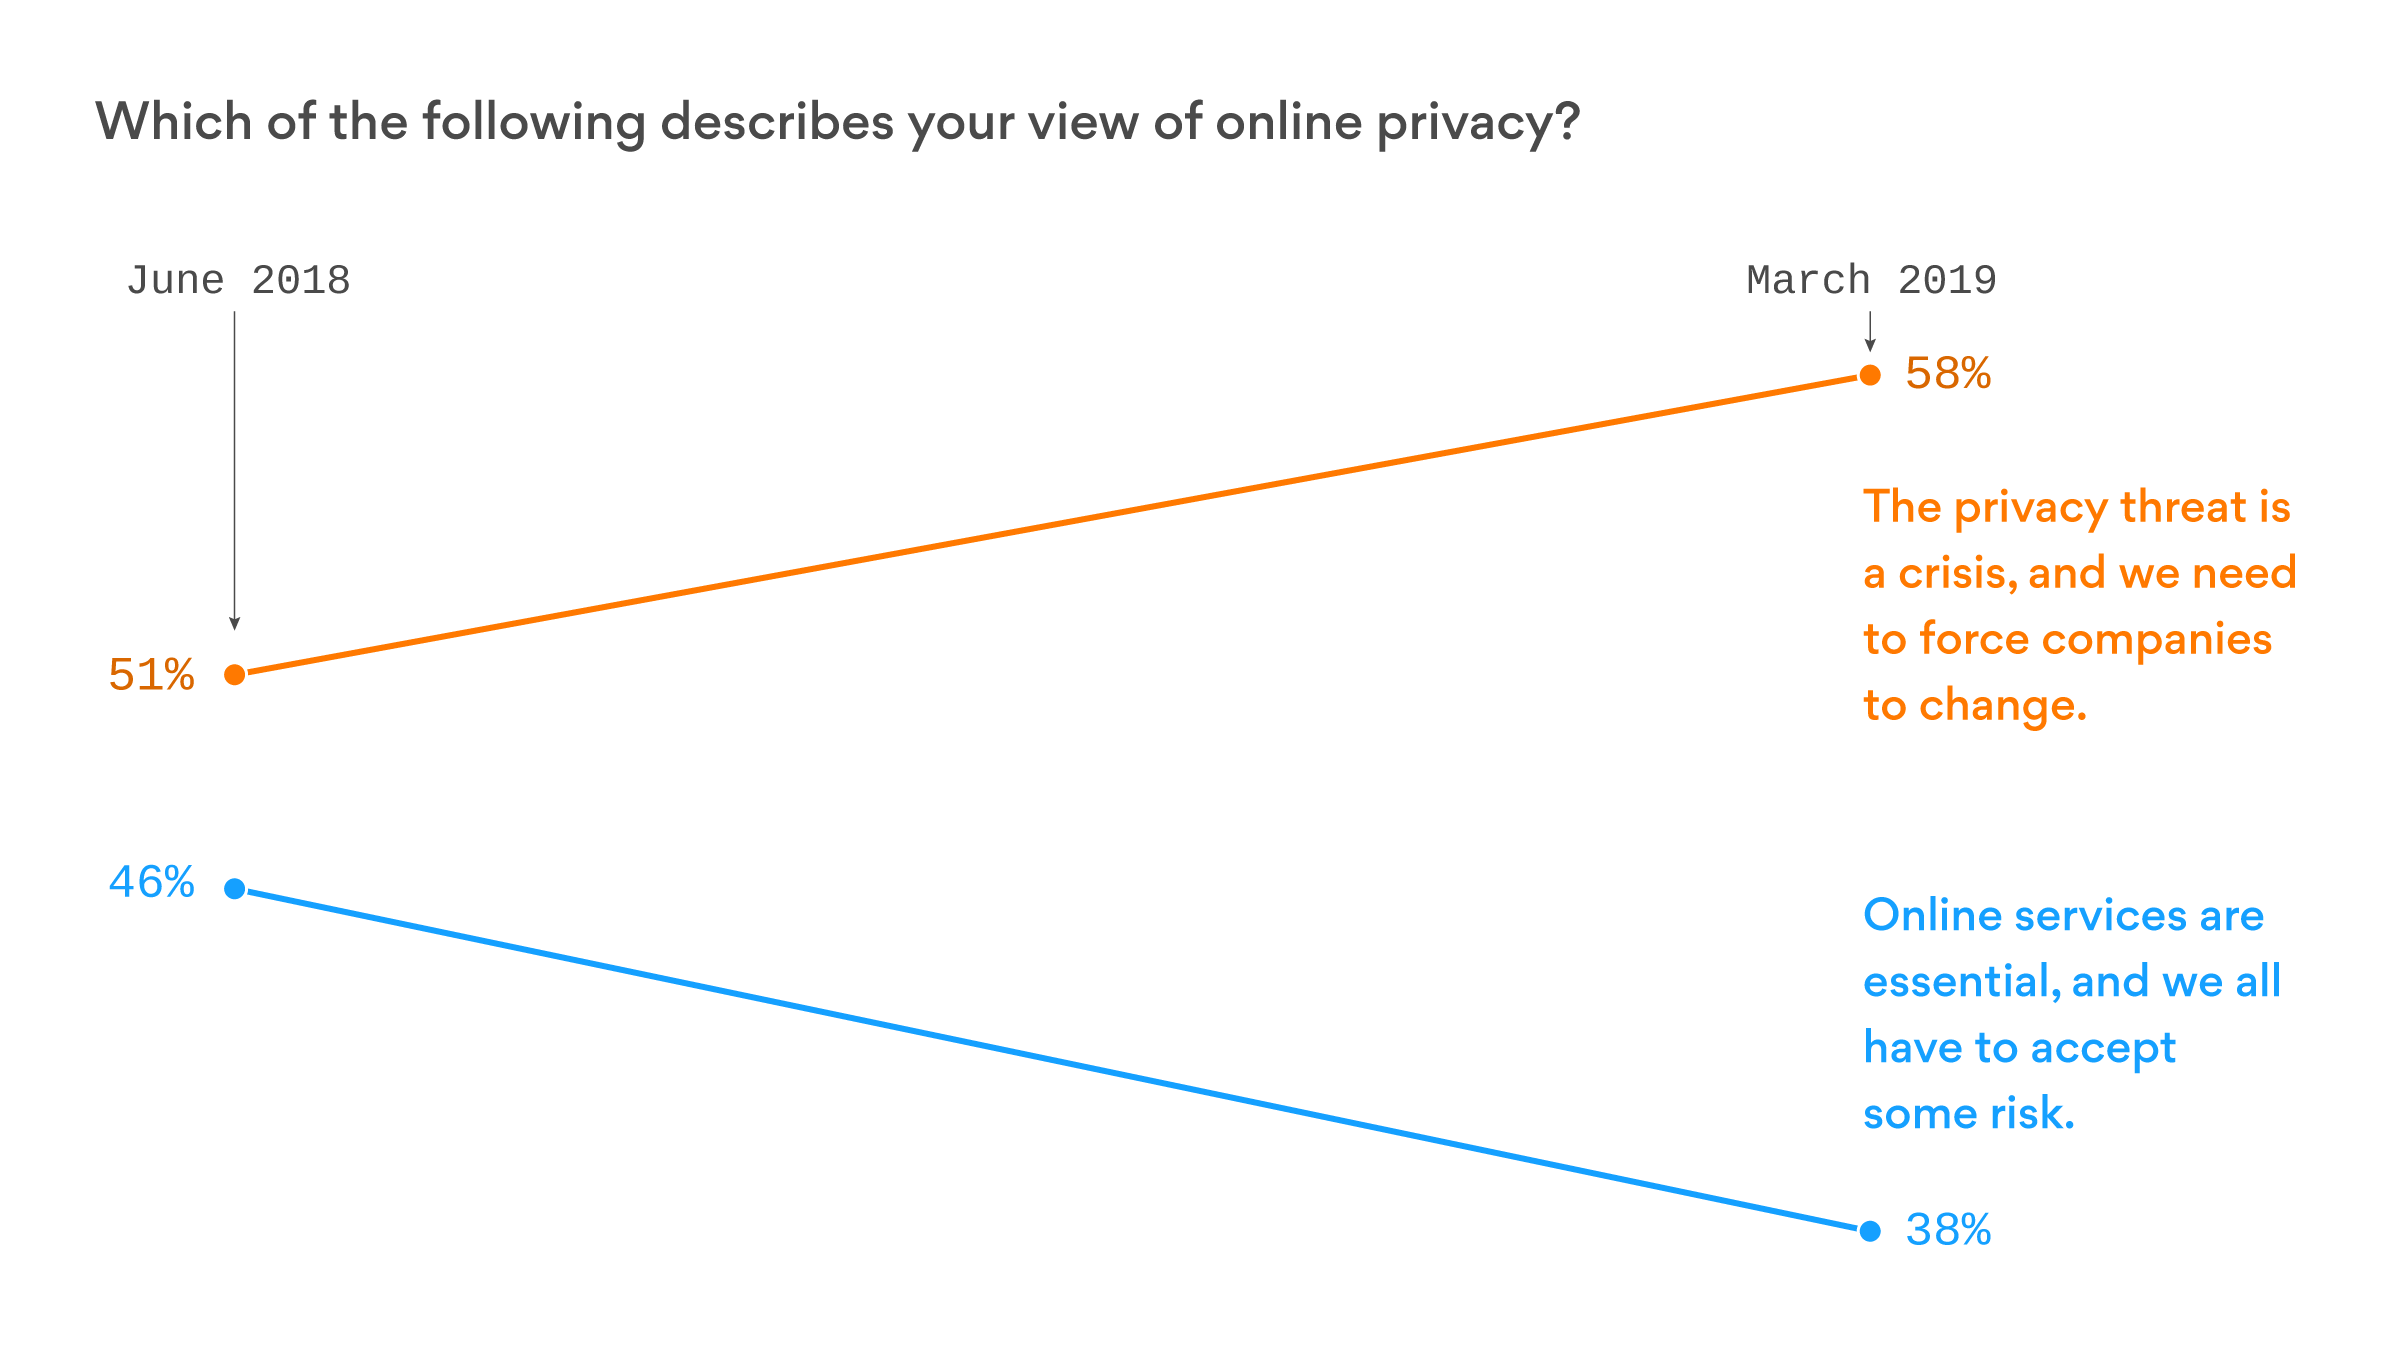 A growing majority now views our online privacy as a crisis - Axios